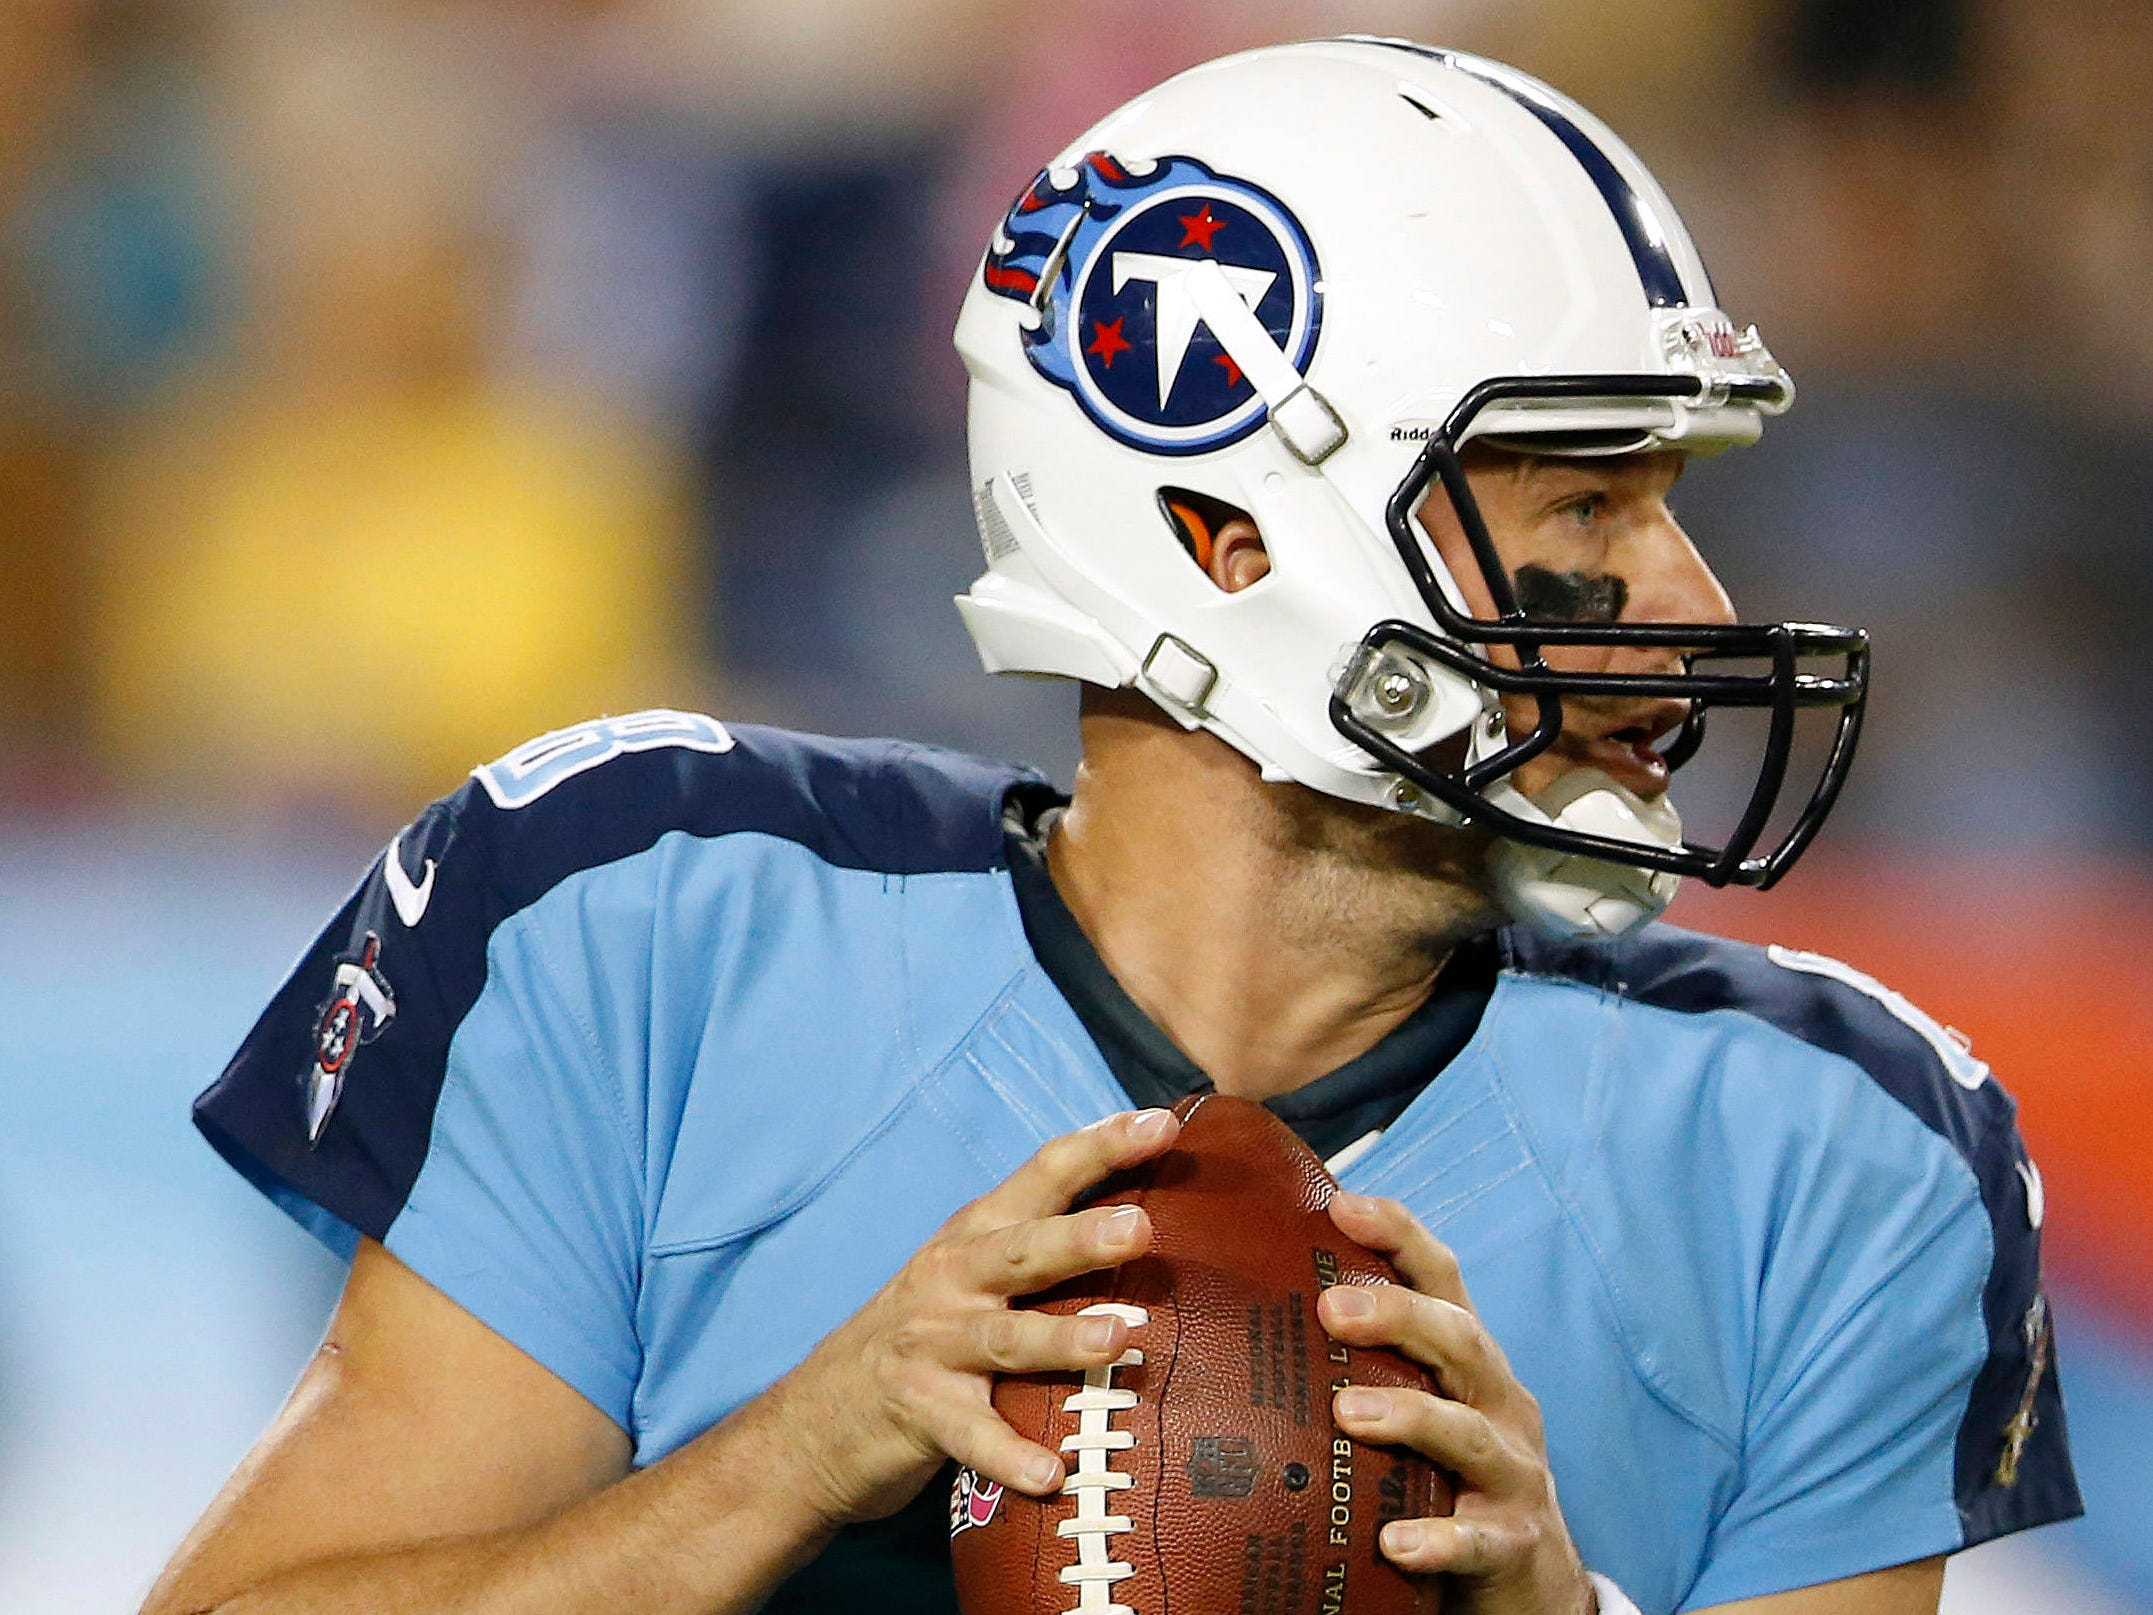 Matt Hasselback -- 21 games started as a Titans quarterback since 1981  Here, Hasselbeck (8) drops to pass during the first half of the Titans' NFL football game against the Pittsburgh Steelers on Thursday, Oct. 11, 2012, in Nashville, Tenn.